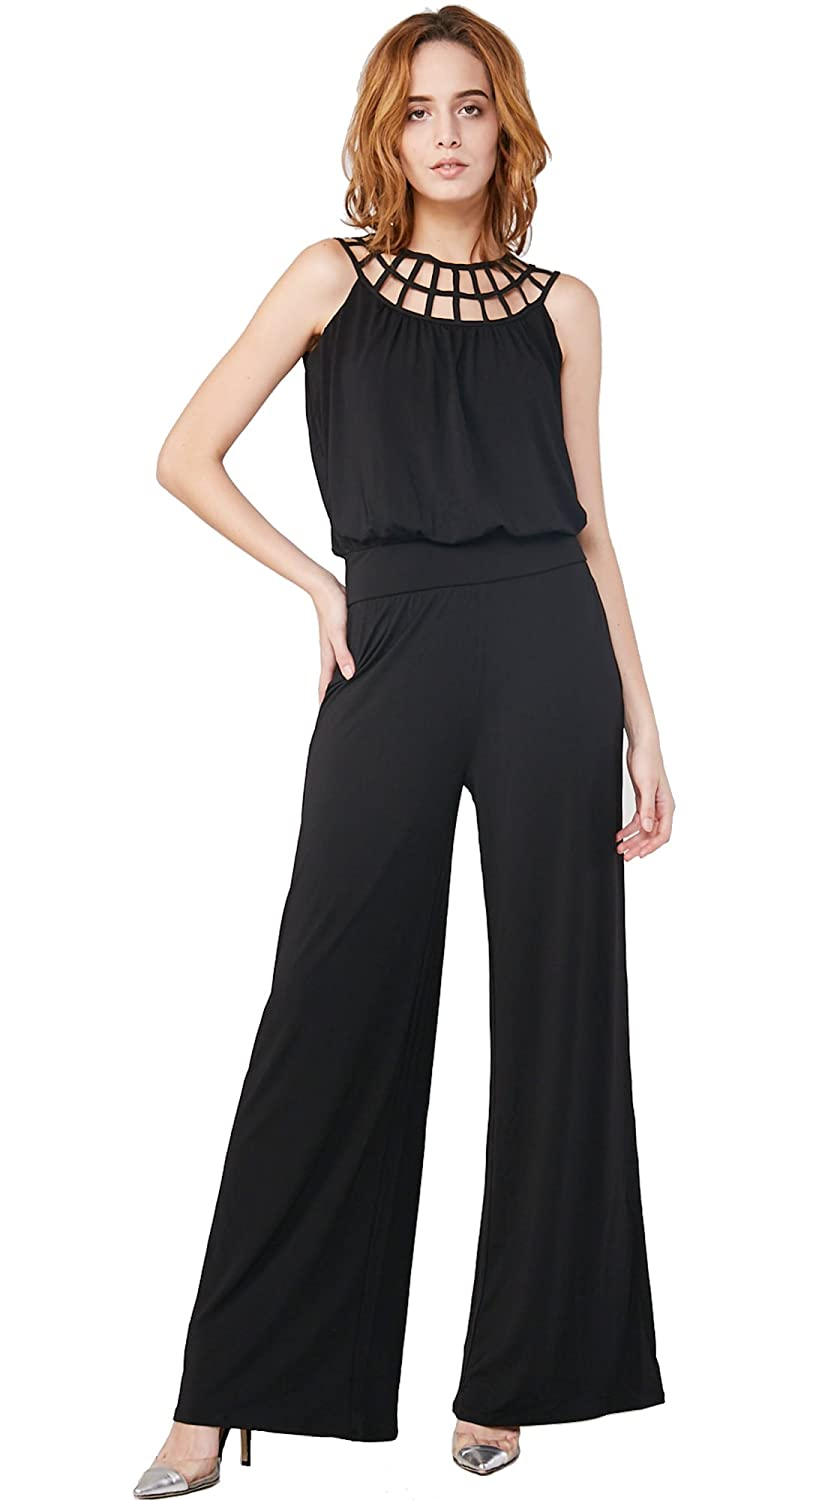 f7b47264344 Amazon.com  Escalier Women`s Wide Leg Jumpsuits Black Strap Hollow Out  Casual Jumpsuit Romper  Clothing